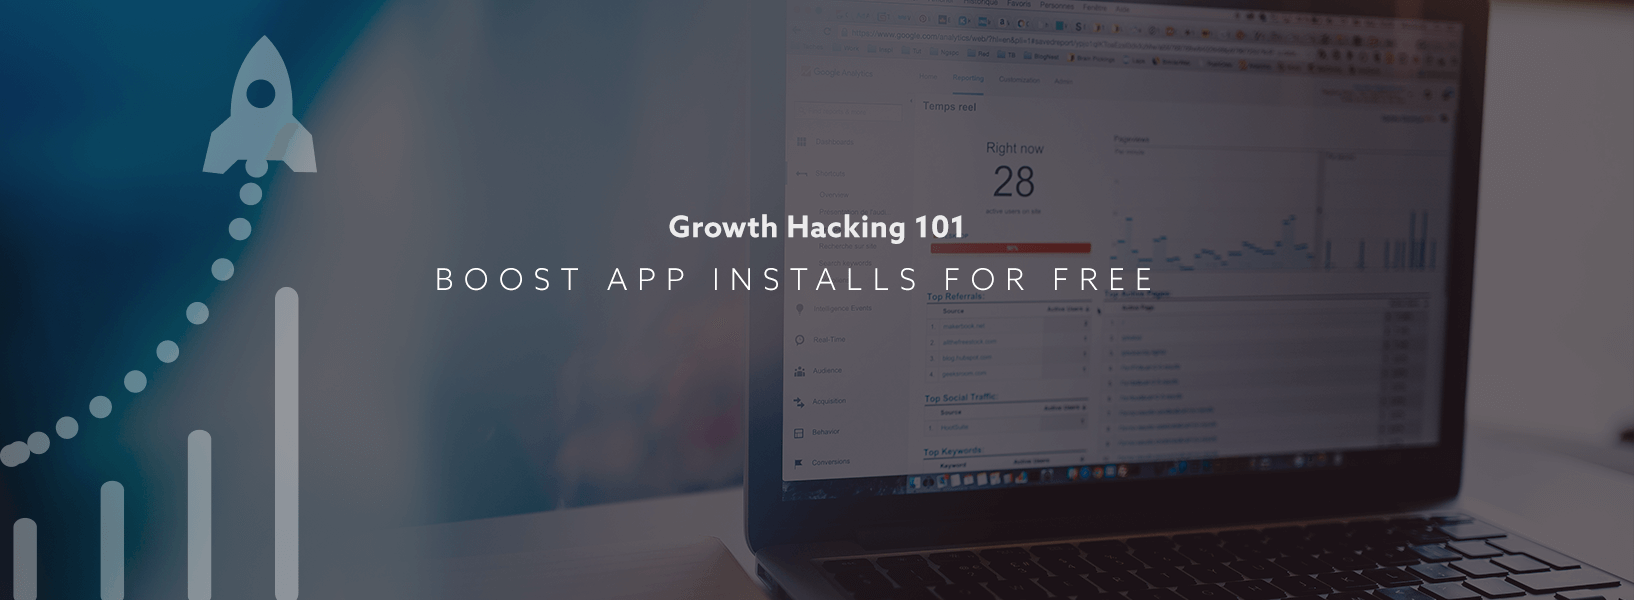 Growth Hacking 101: How To Boost App Installs For FREE!